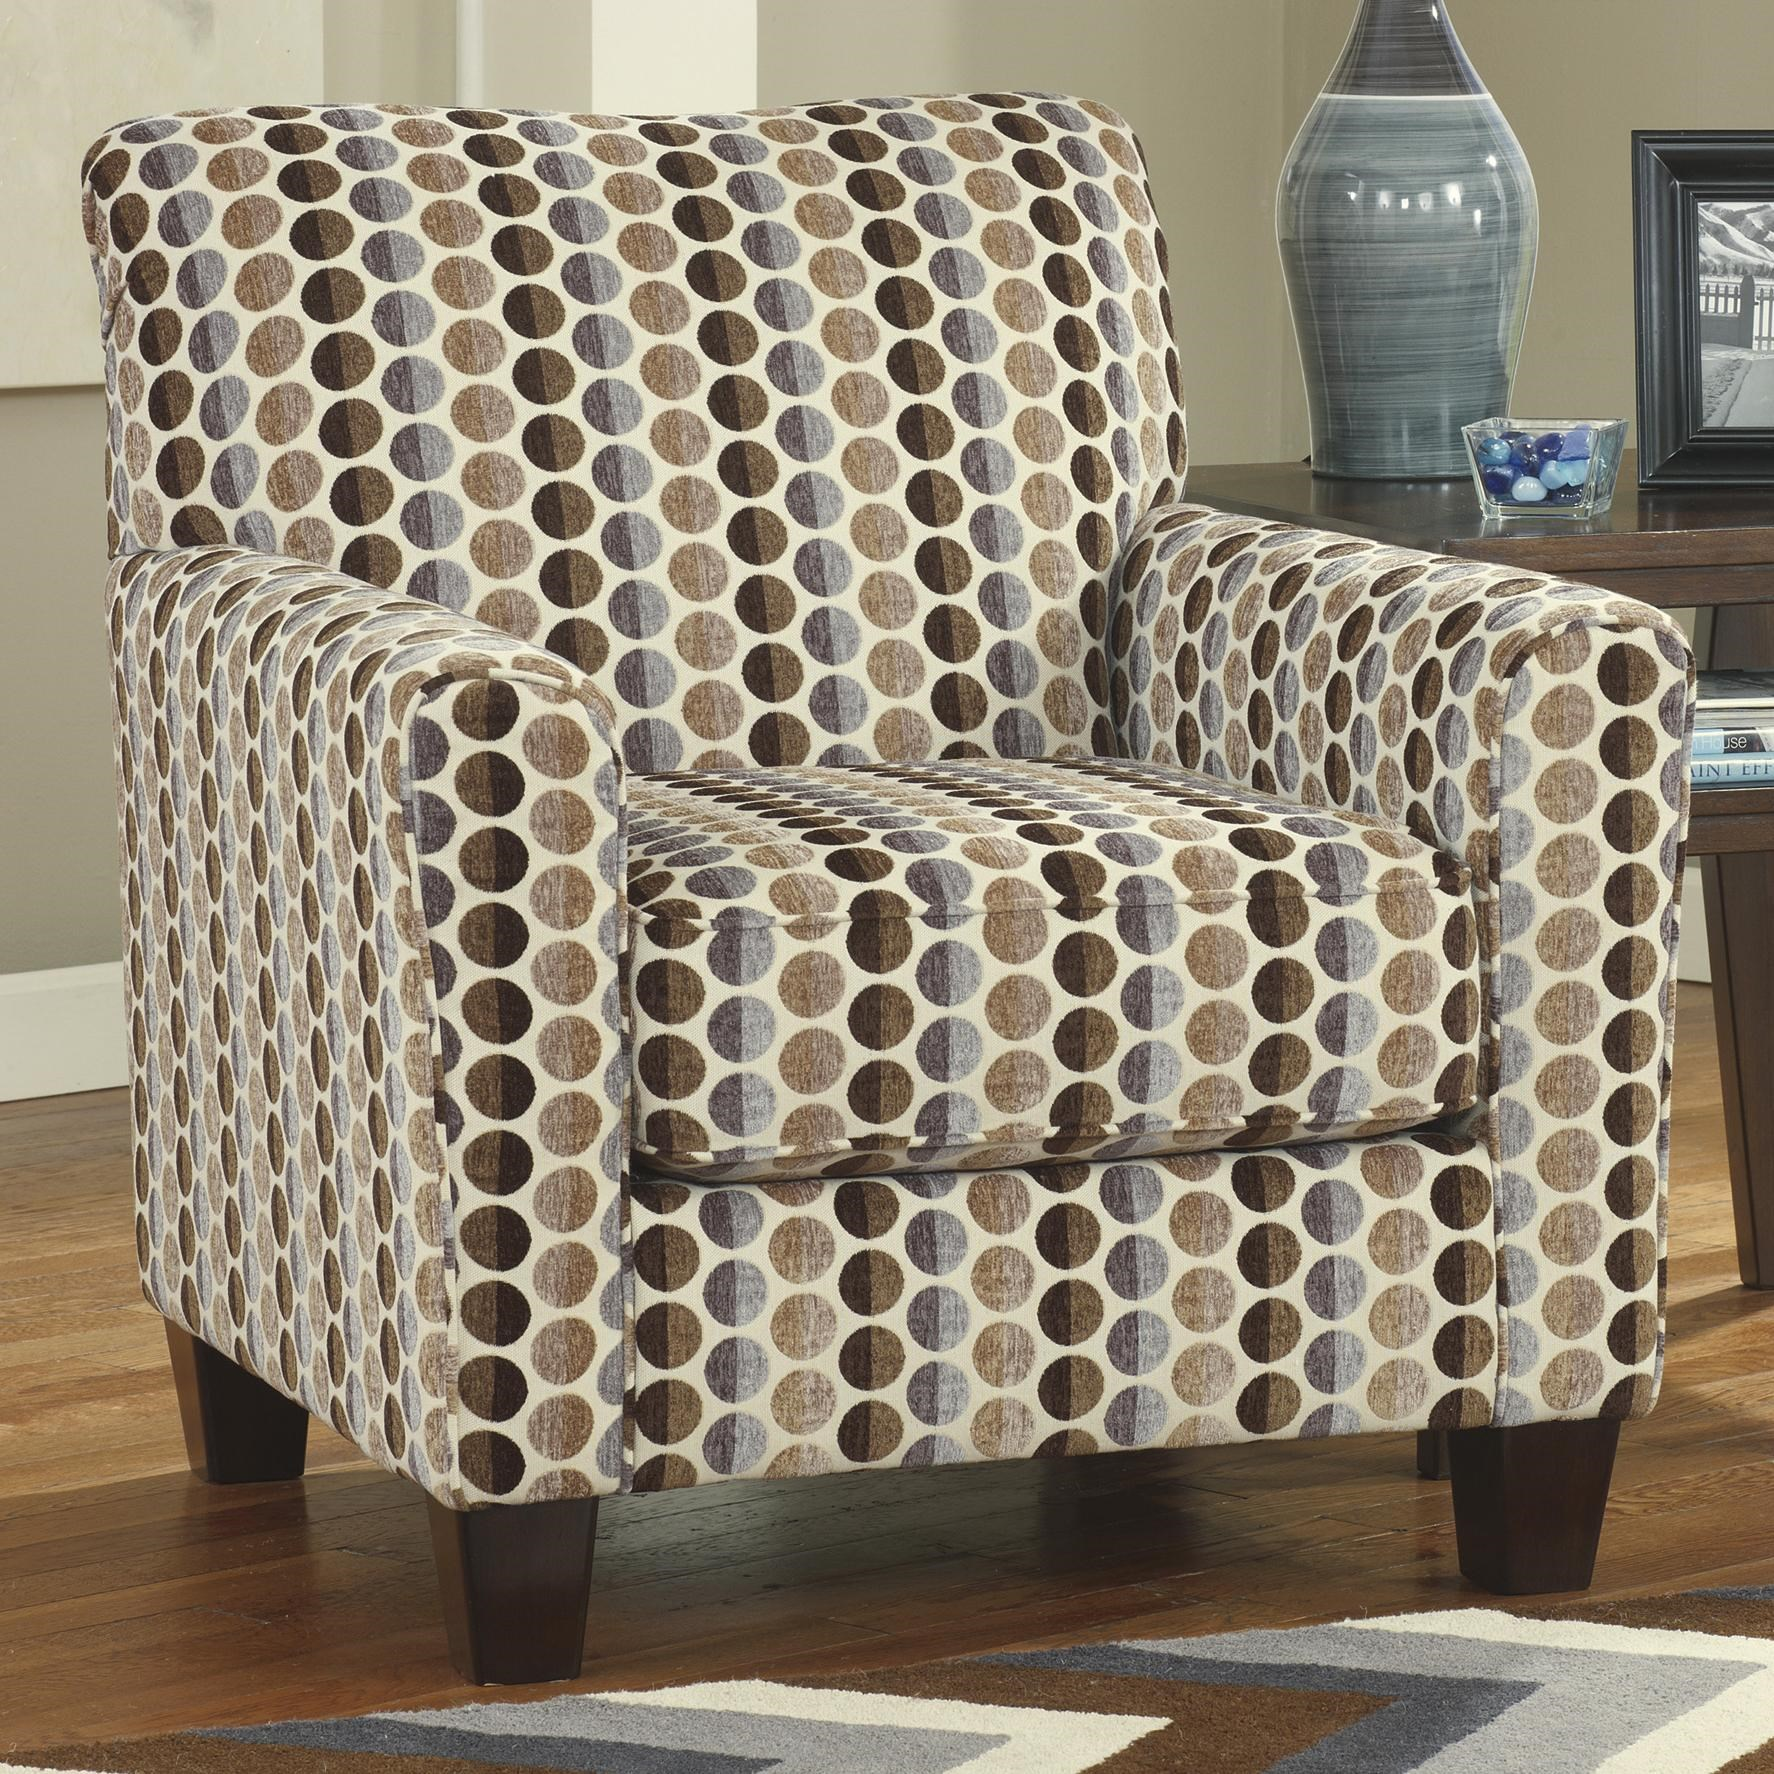 Geor Contemporary Accent Chair with Circle Print